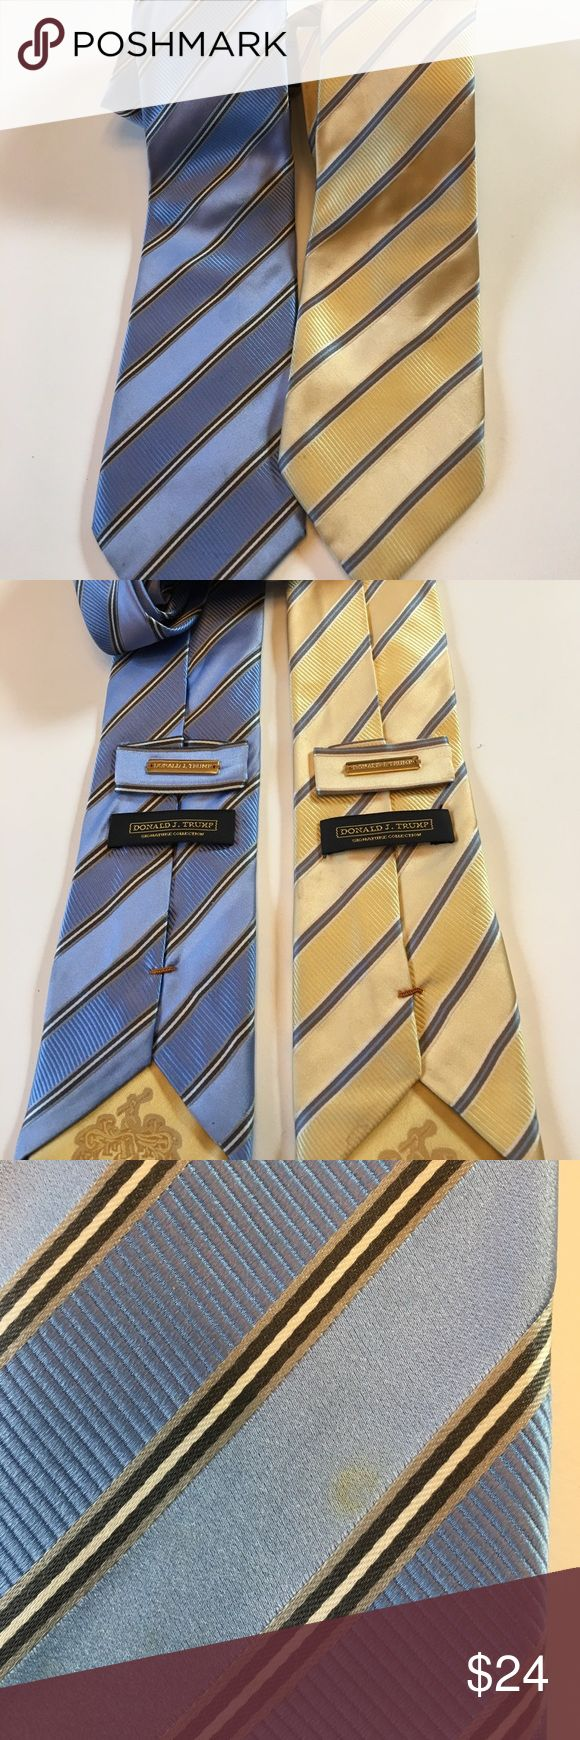 Donald Trump Ties x 3 Please look at pics. Yellow and purple tie have small spots. I have not tried to remove them. Donald Trump Accessories Ties